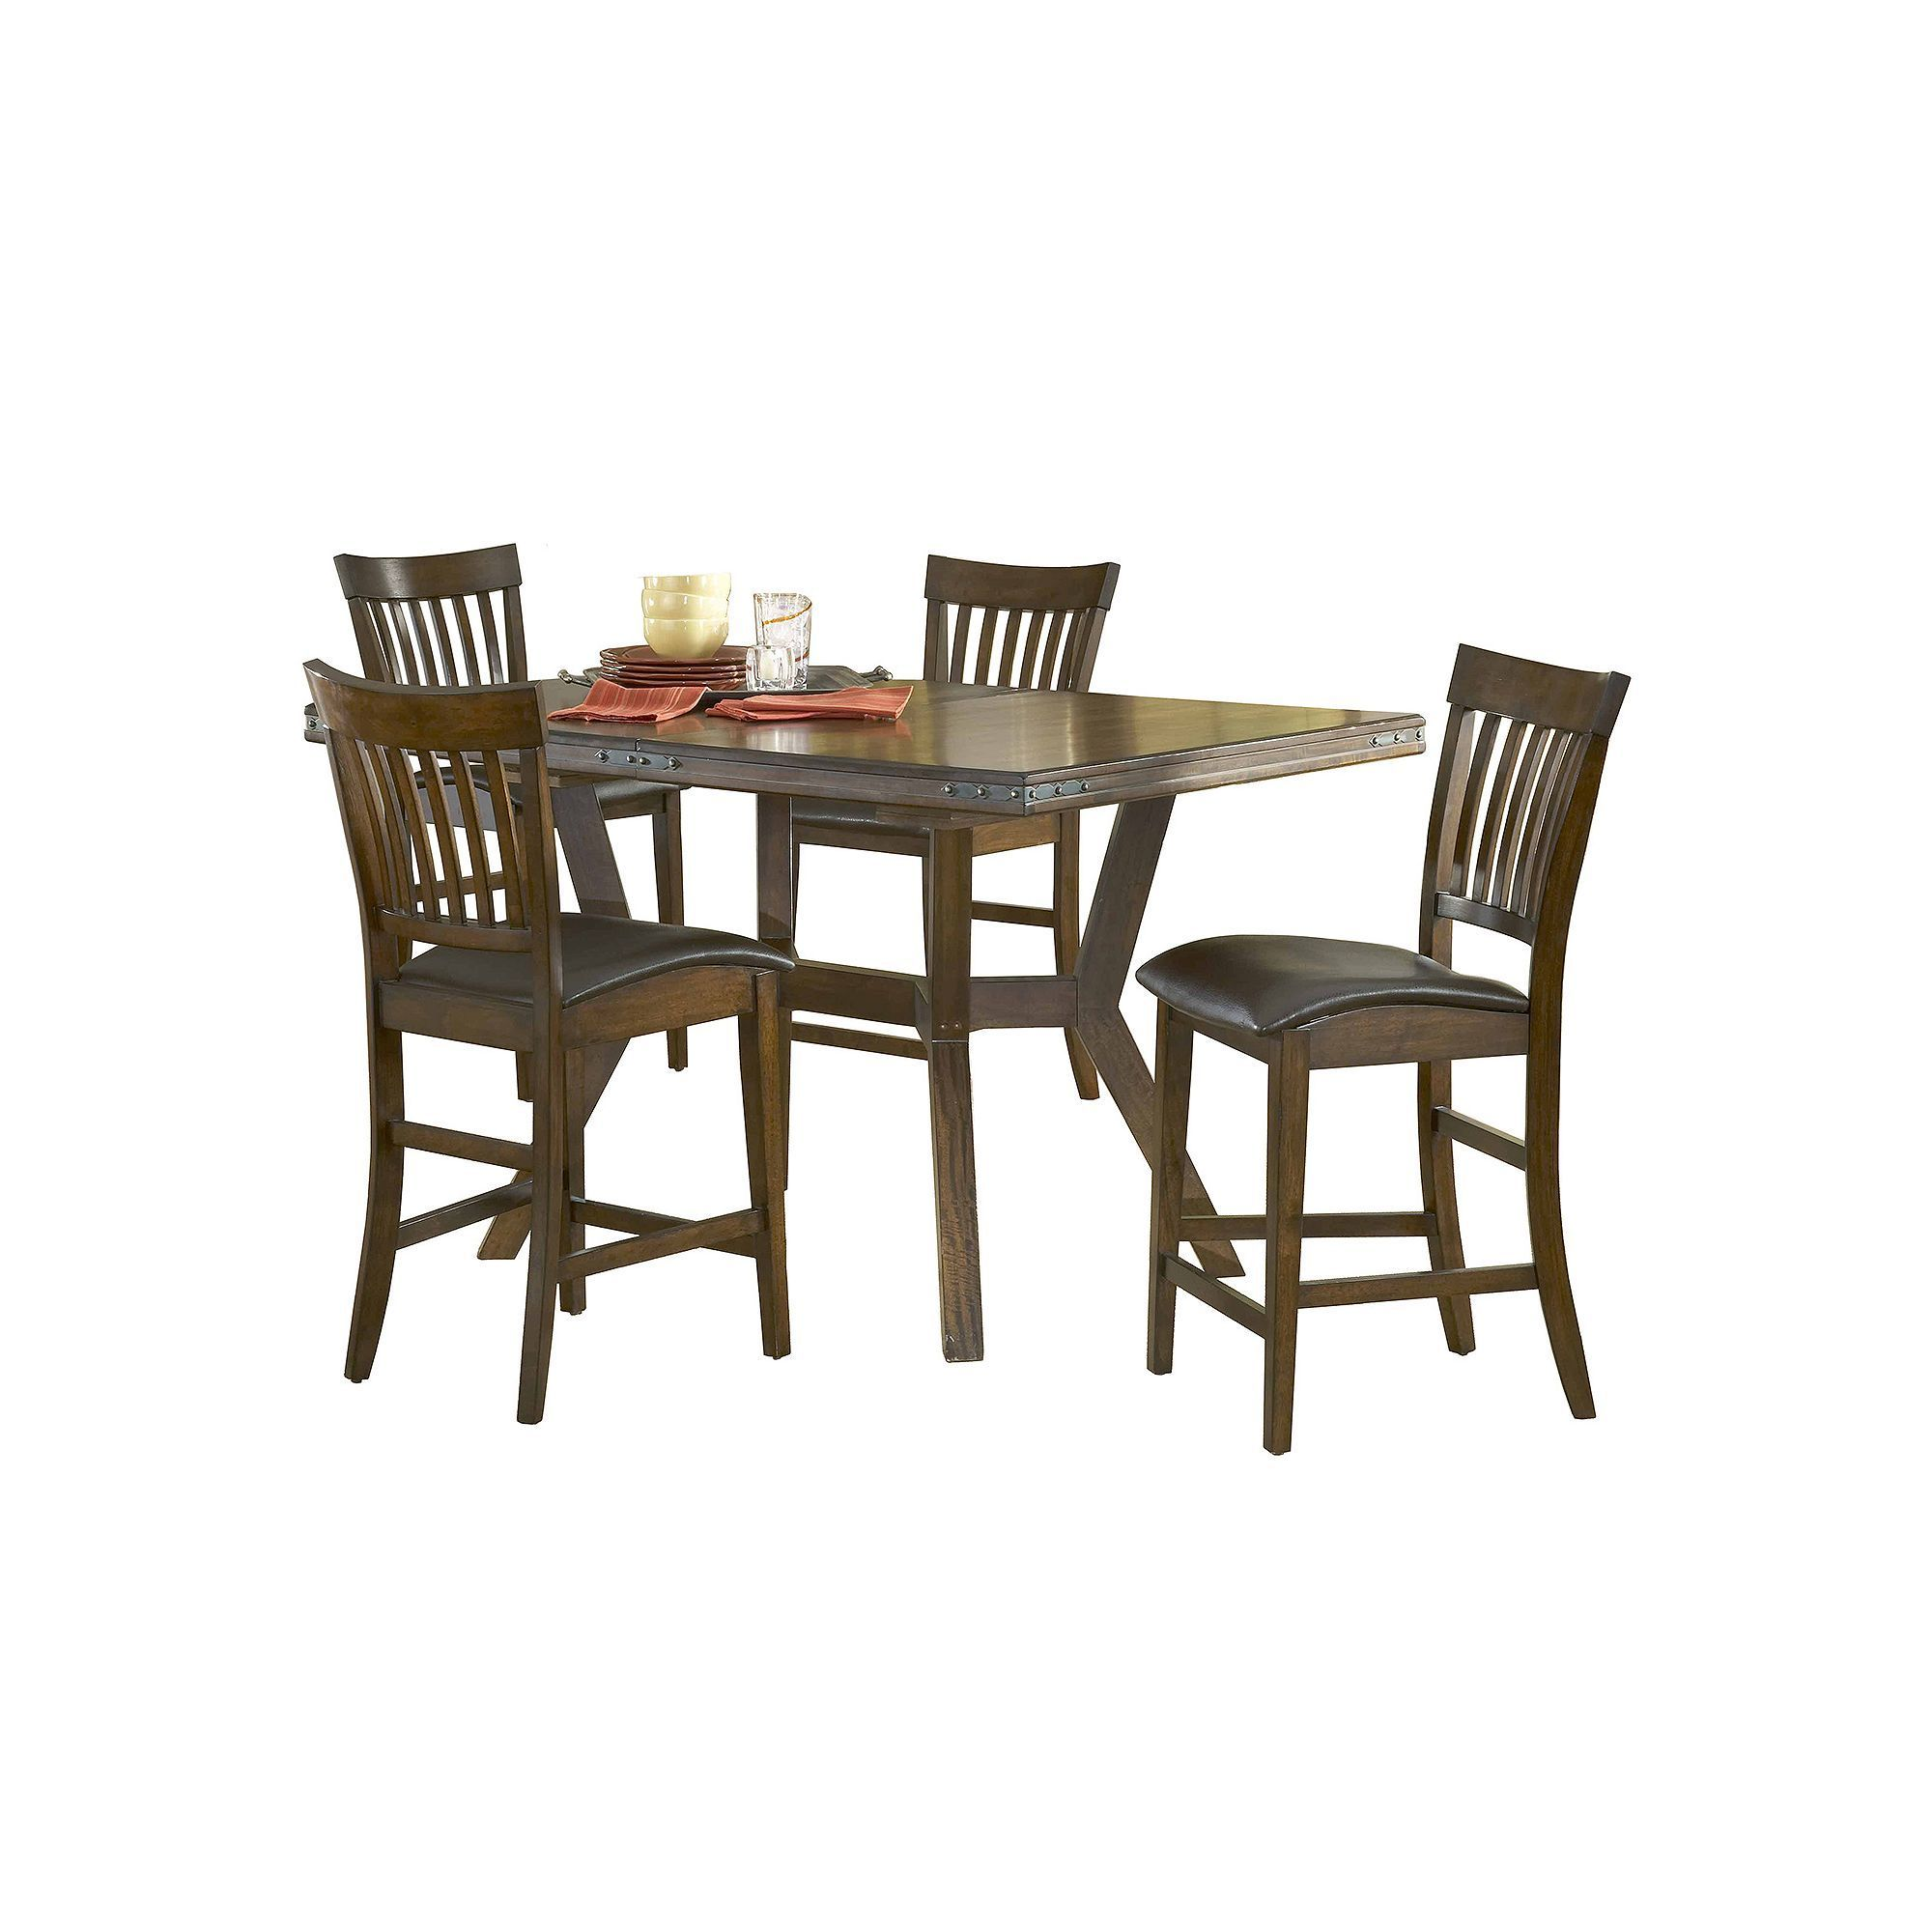 Vermont Extendable Garden Table And Chair Set: Hillsdale Furniture Arbor Hill 5-pc. Extendable Dining Set